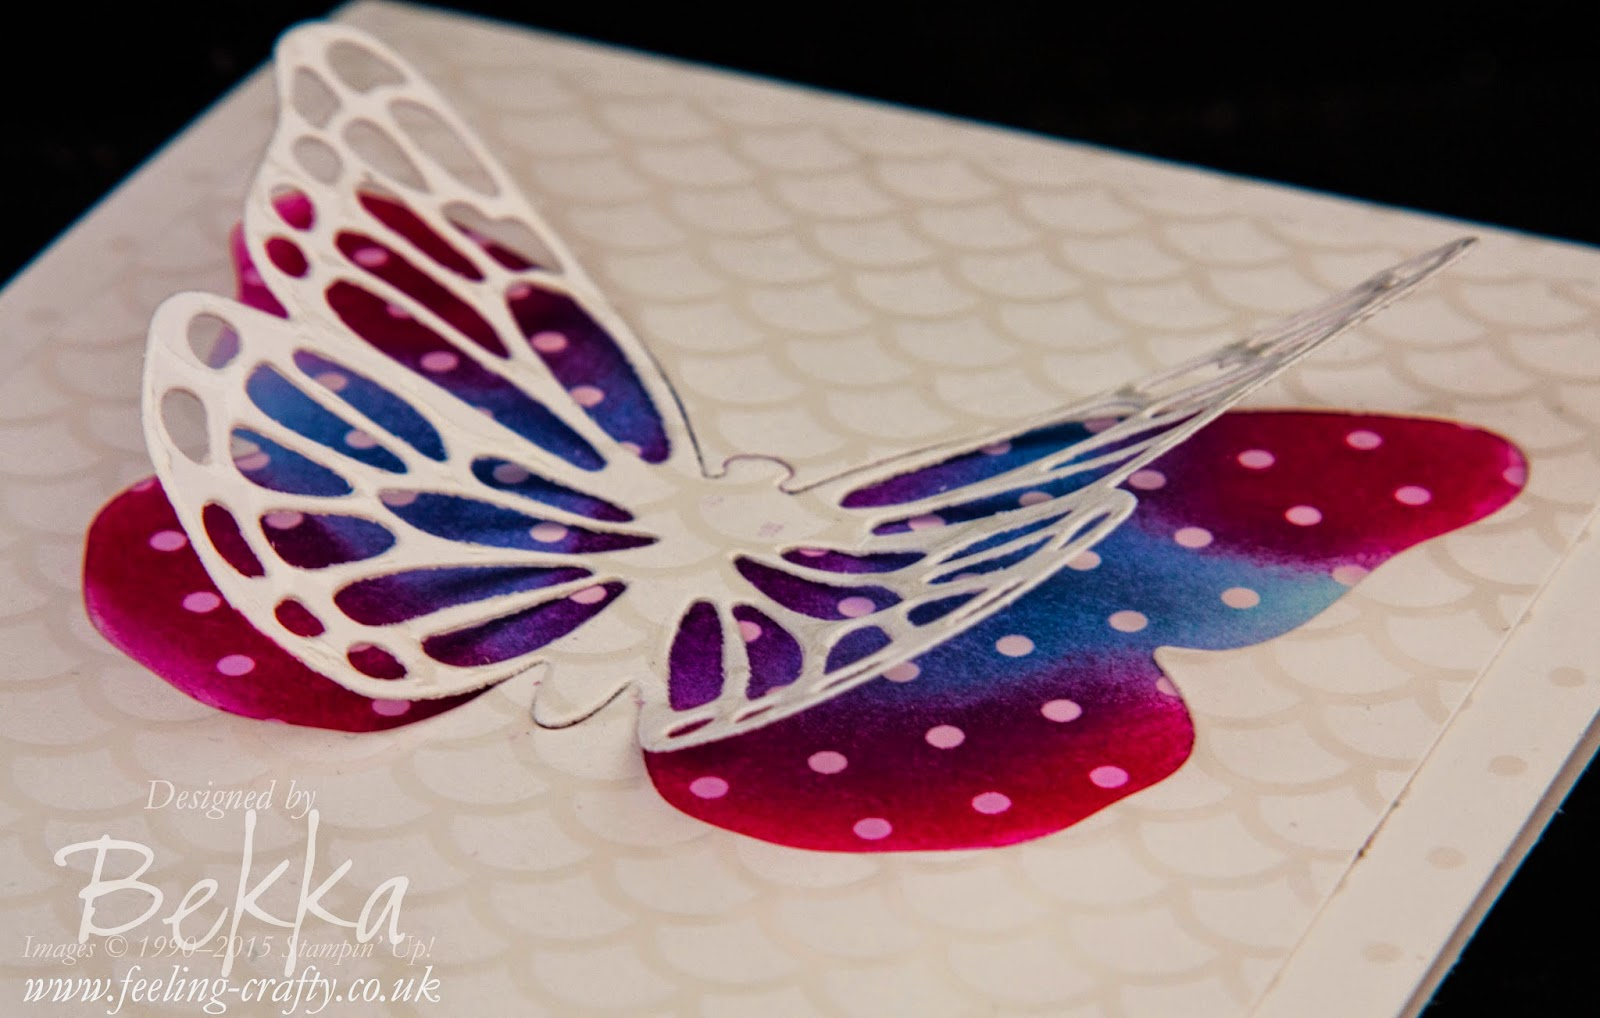 Irresistibly Yours Birthday Butterflies - check out this blog for lots of cute ideas